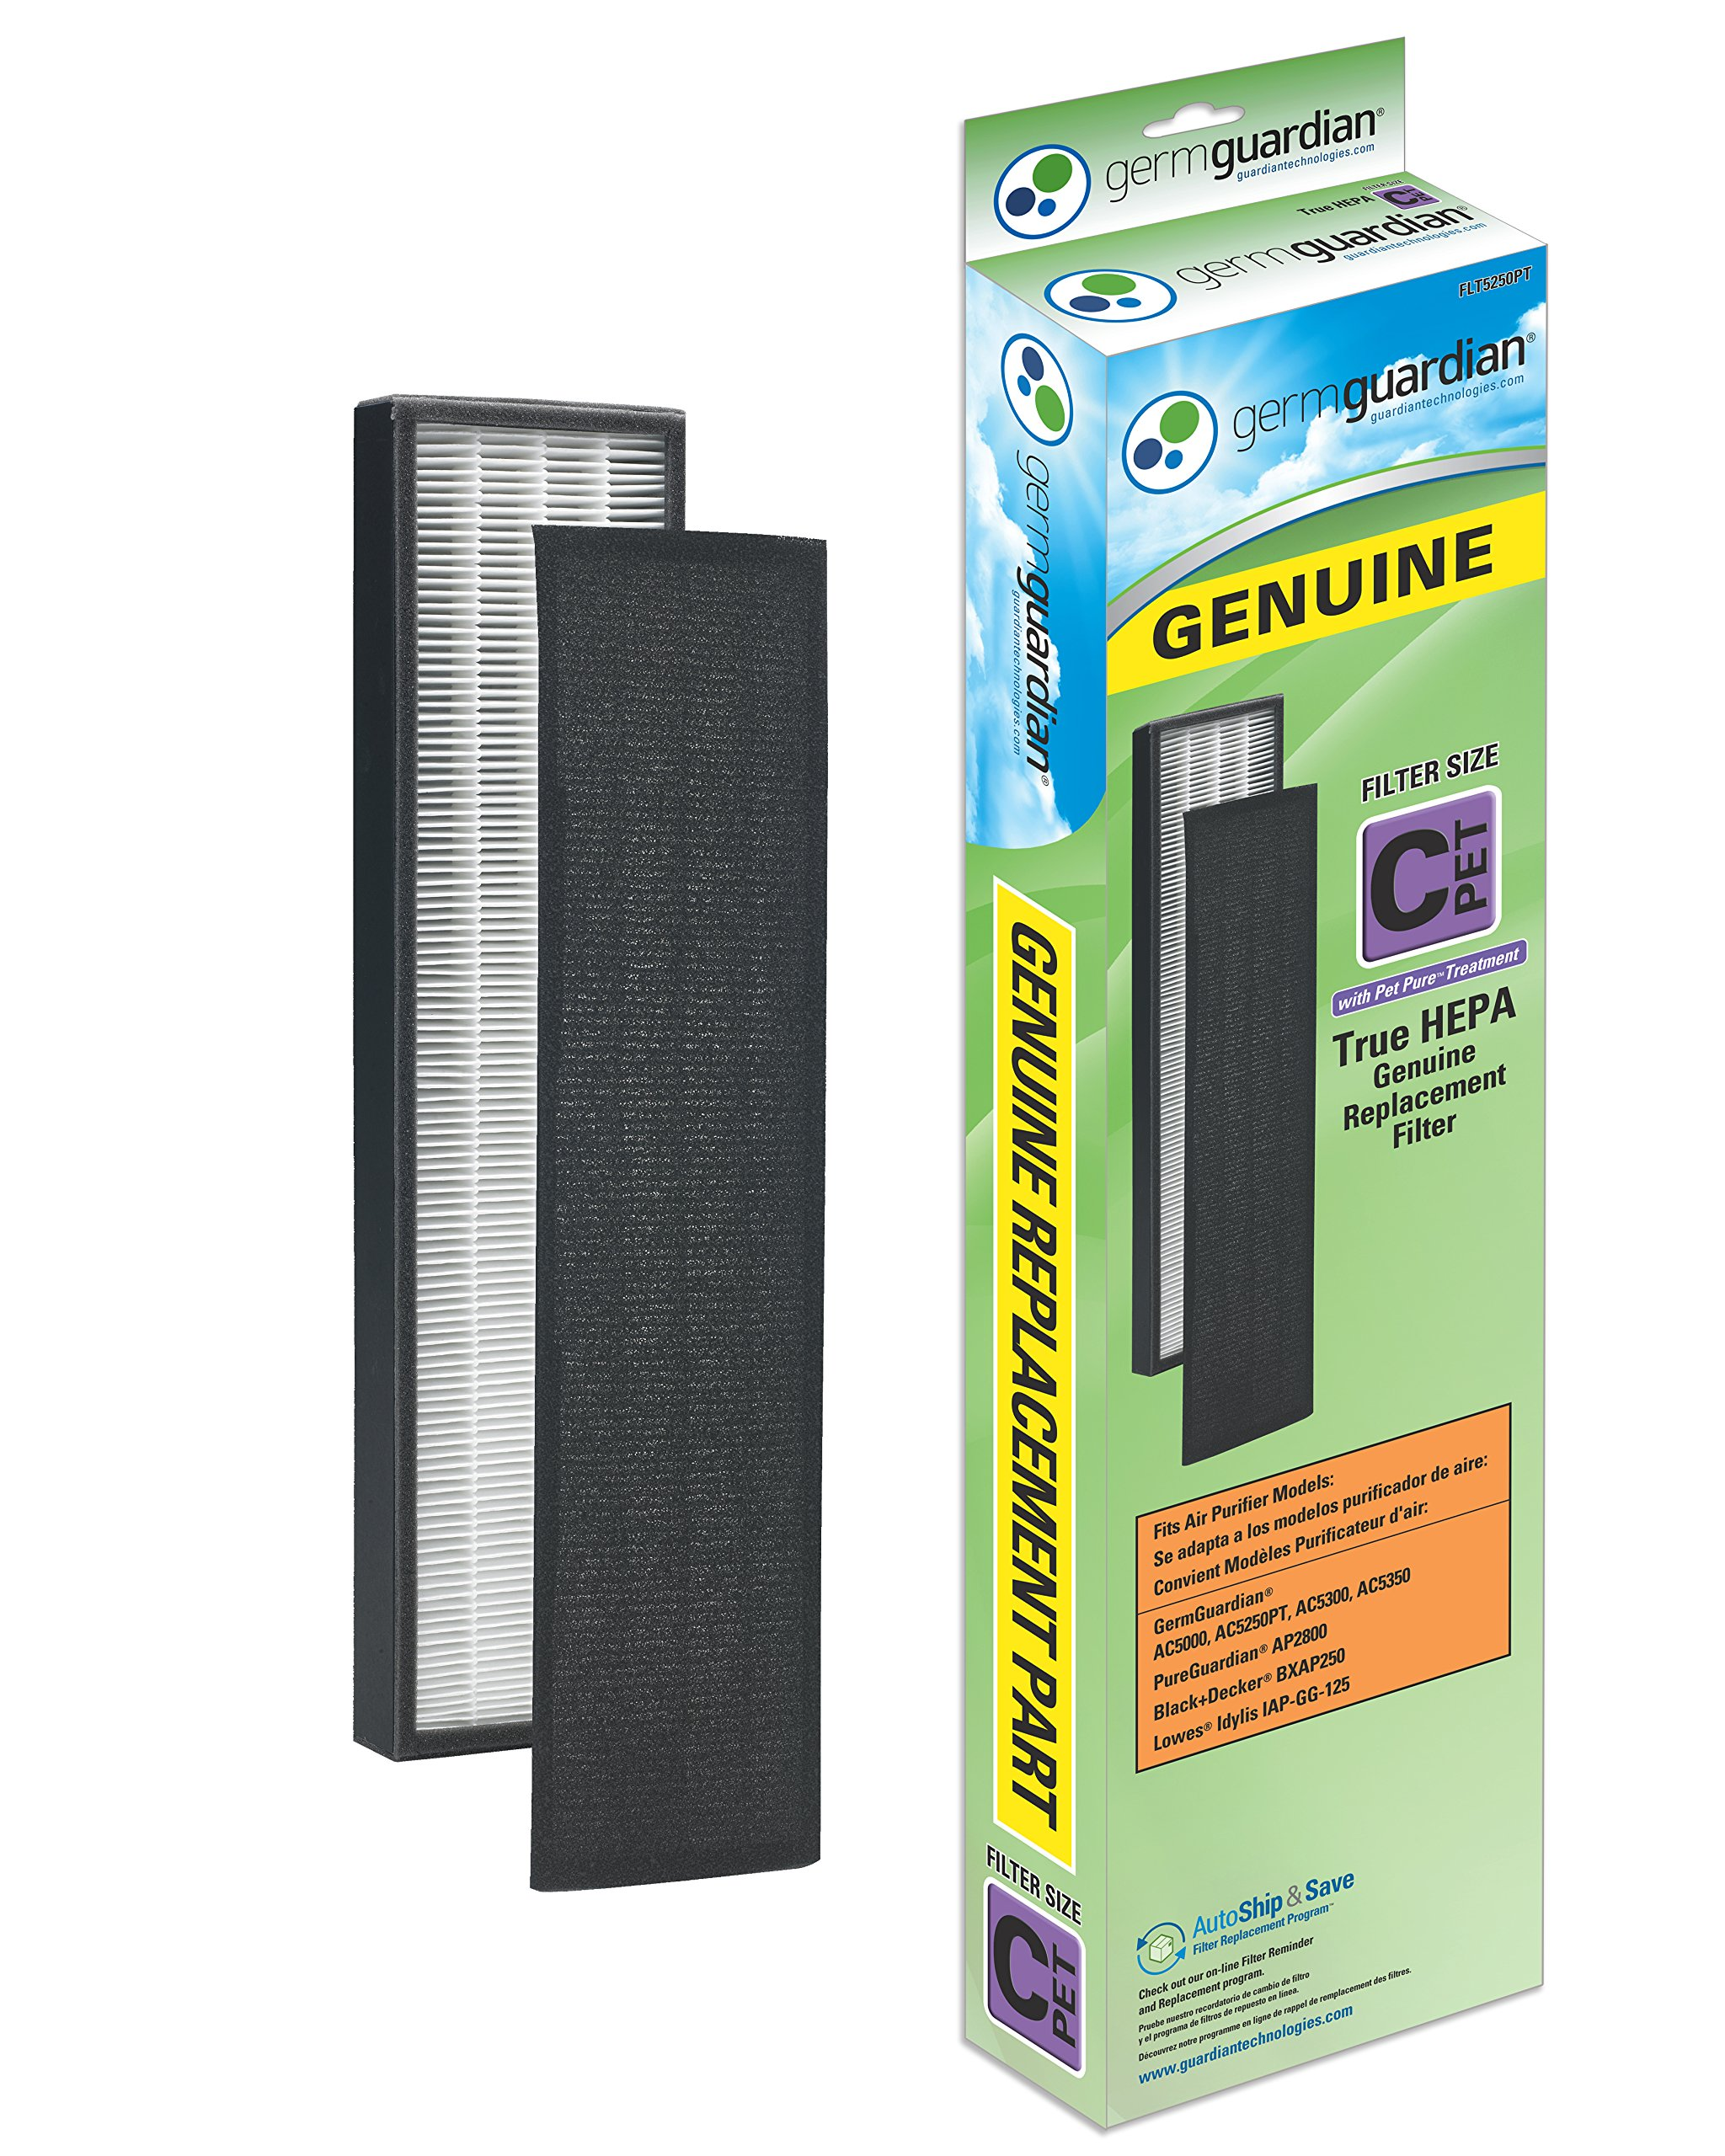 GermGuardian Air Purifier Filter FLT5250PT GENUINE HEPA Pet Pure Replacement Filter C Pet for AC5000, AC5000E, AC5250PT, AC5350B, AC5350BCA, AC5350W, AC5300B Germ Guardian Air Purifiers